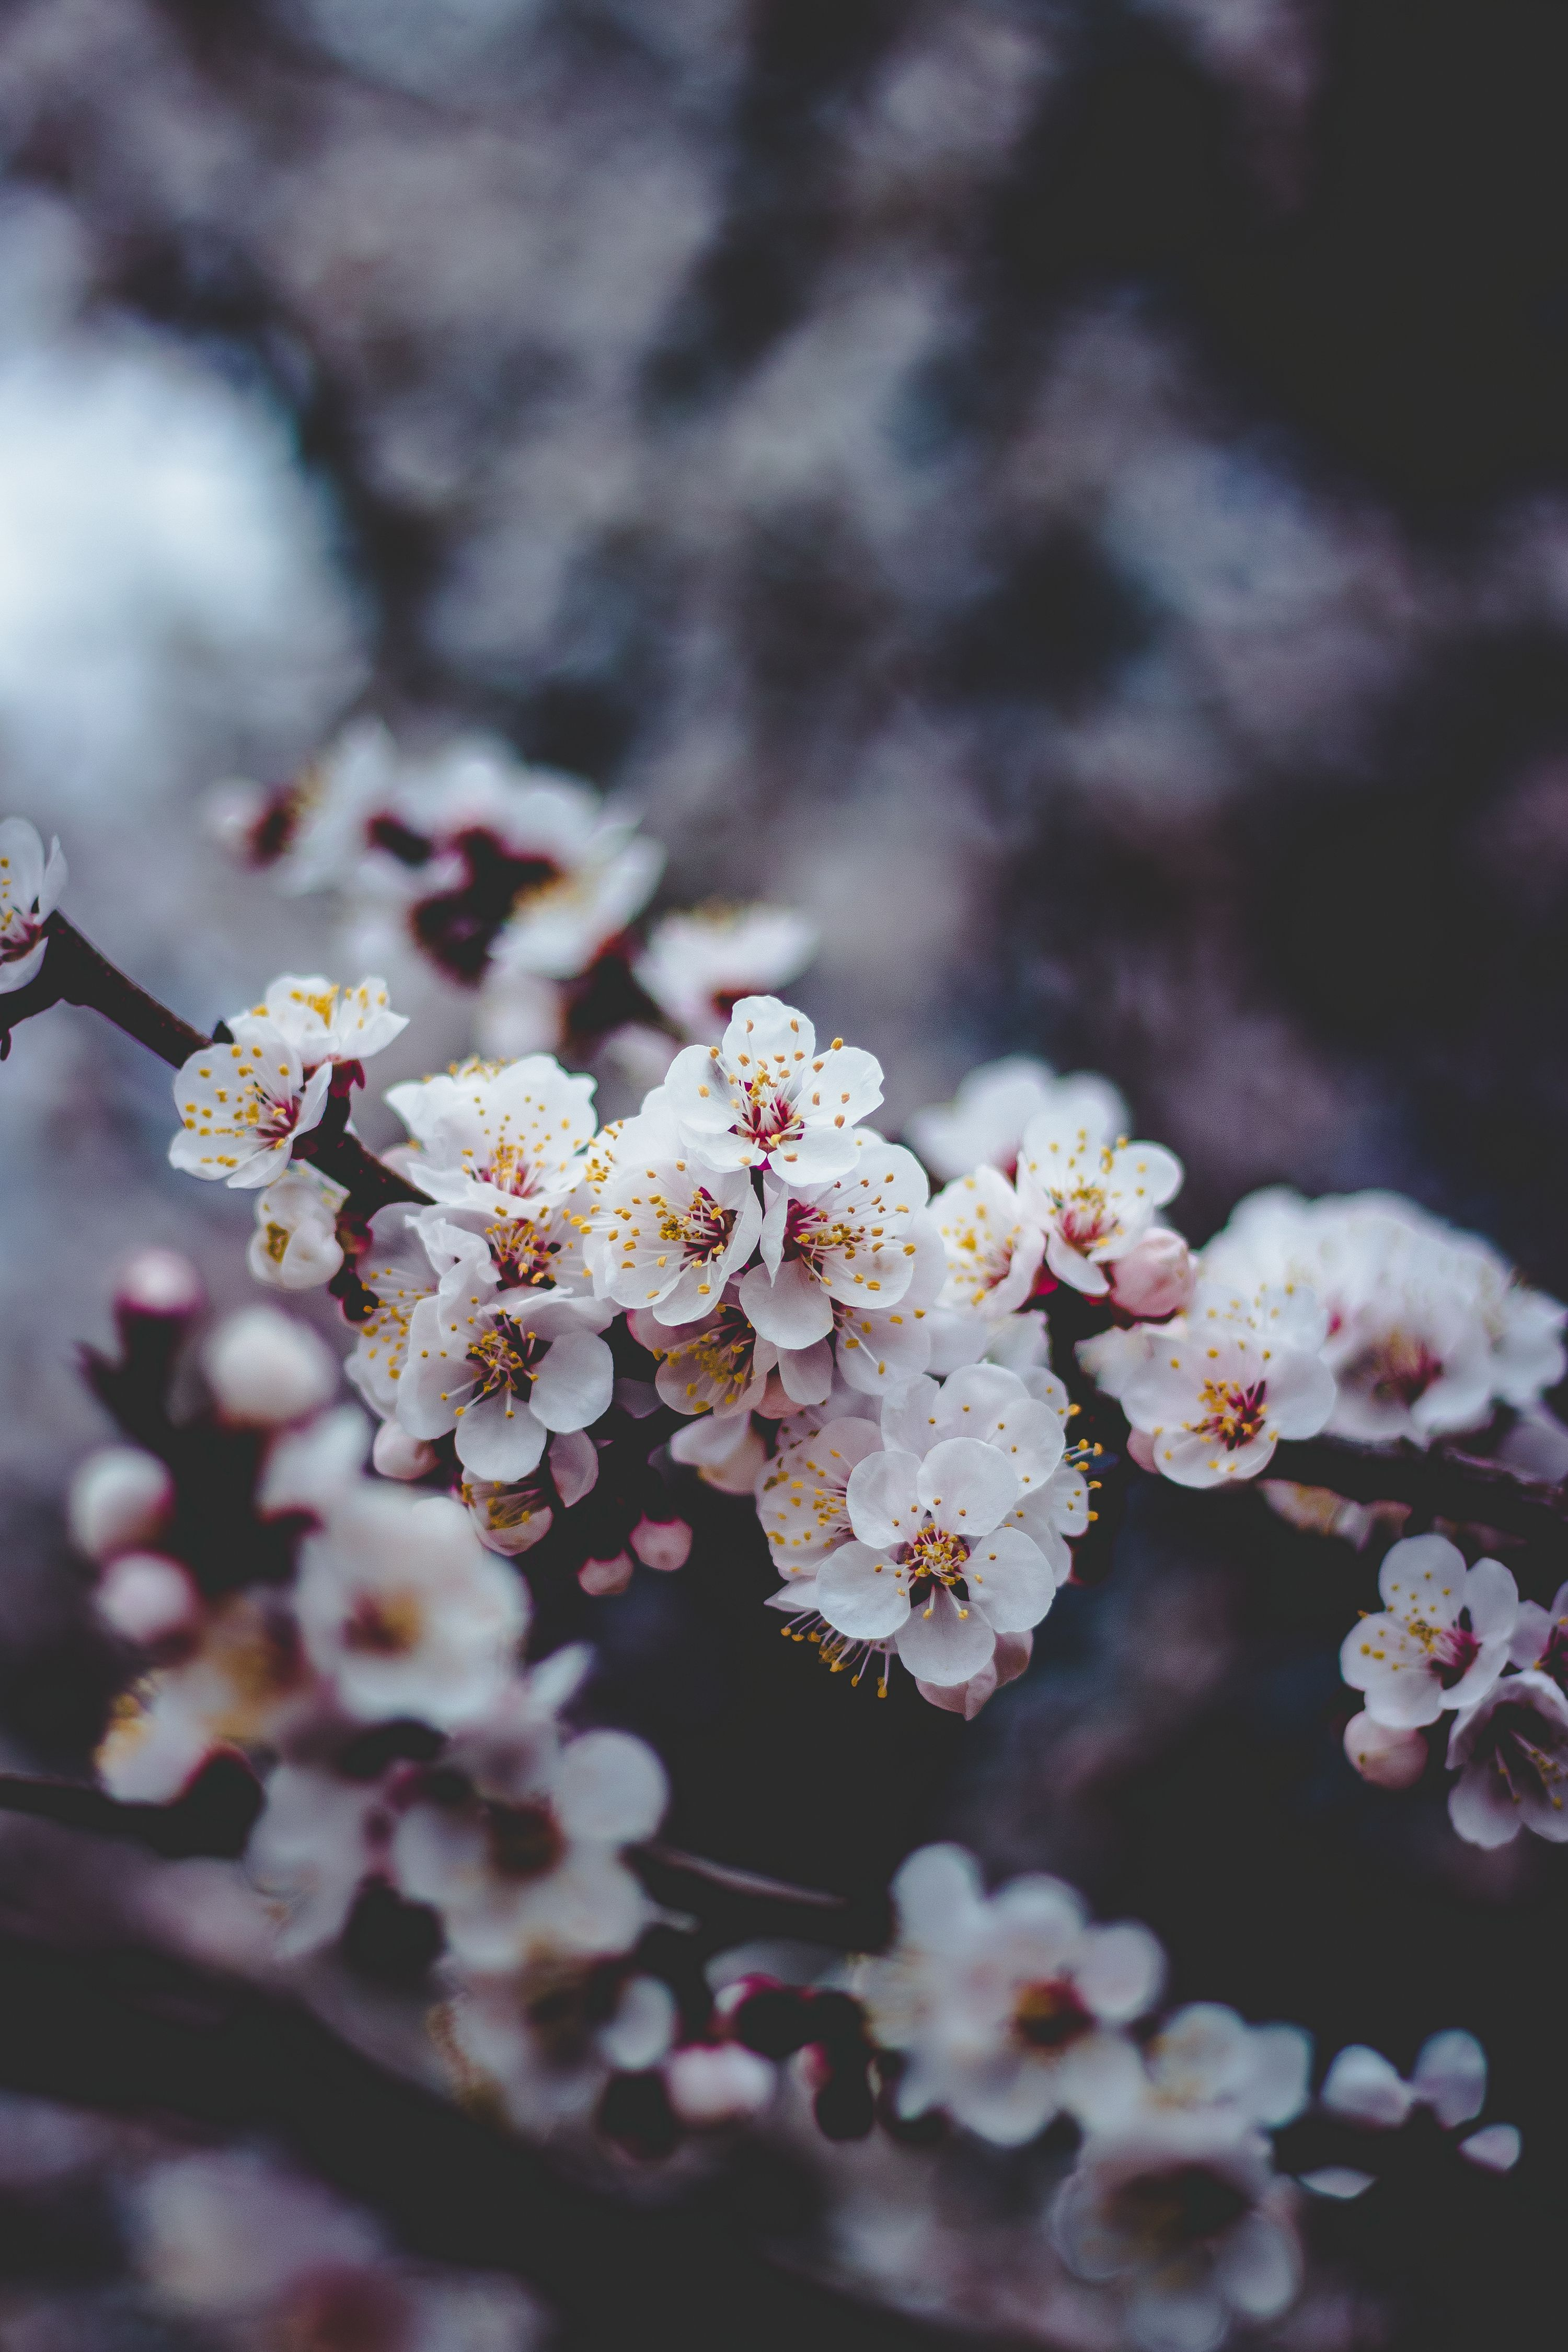 Bokeh Flowers Cherry Blossoms Bokeh Flowers Flower Pictures Macro Photography Flowers Flowers